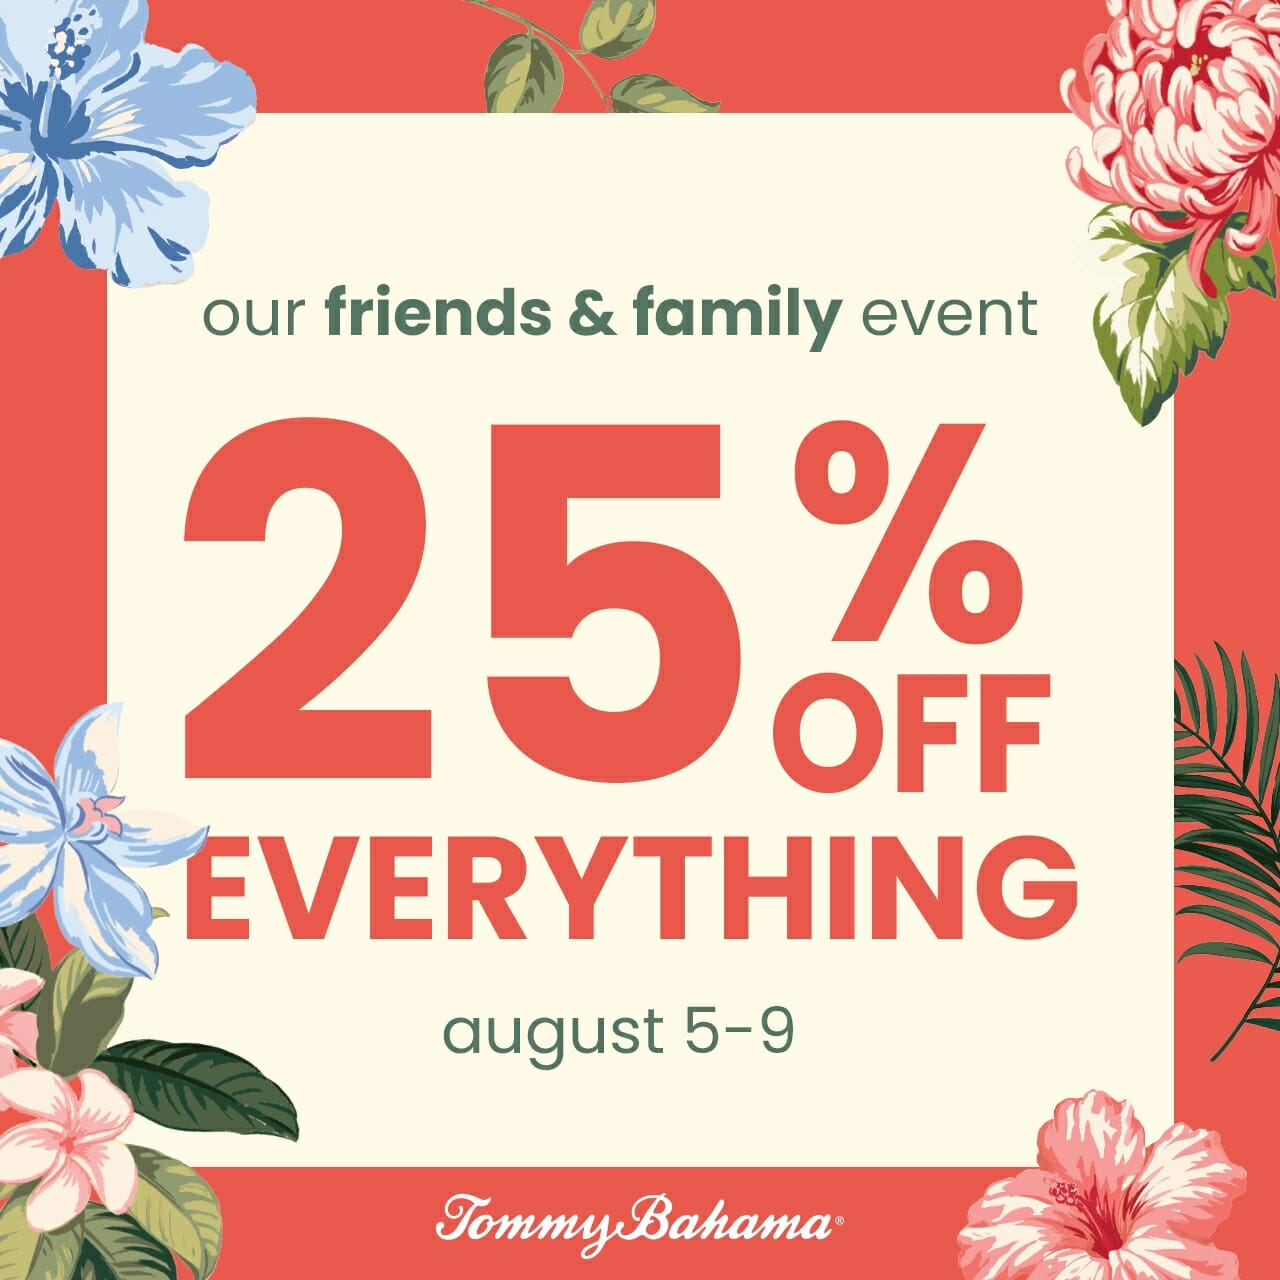 our friends and family event! 25% off everything. August 5-9 at Tommy Bahama